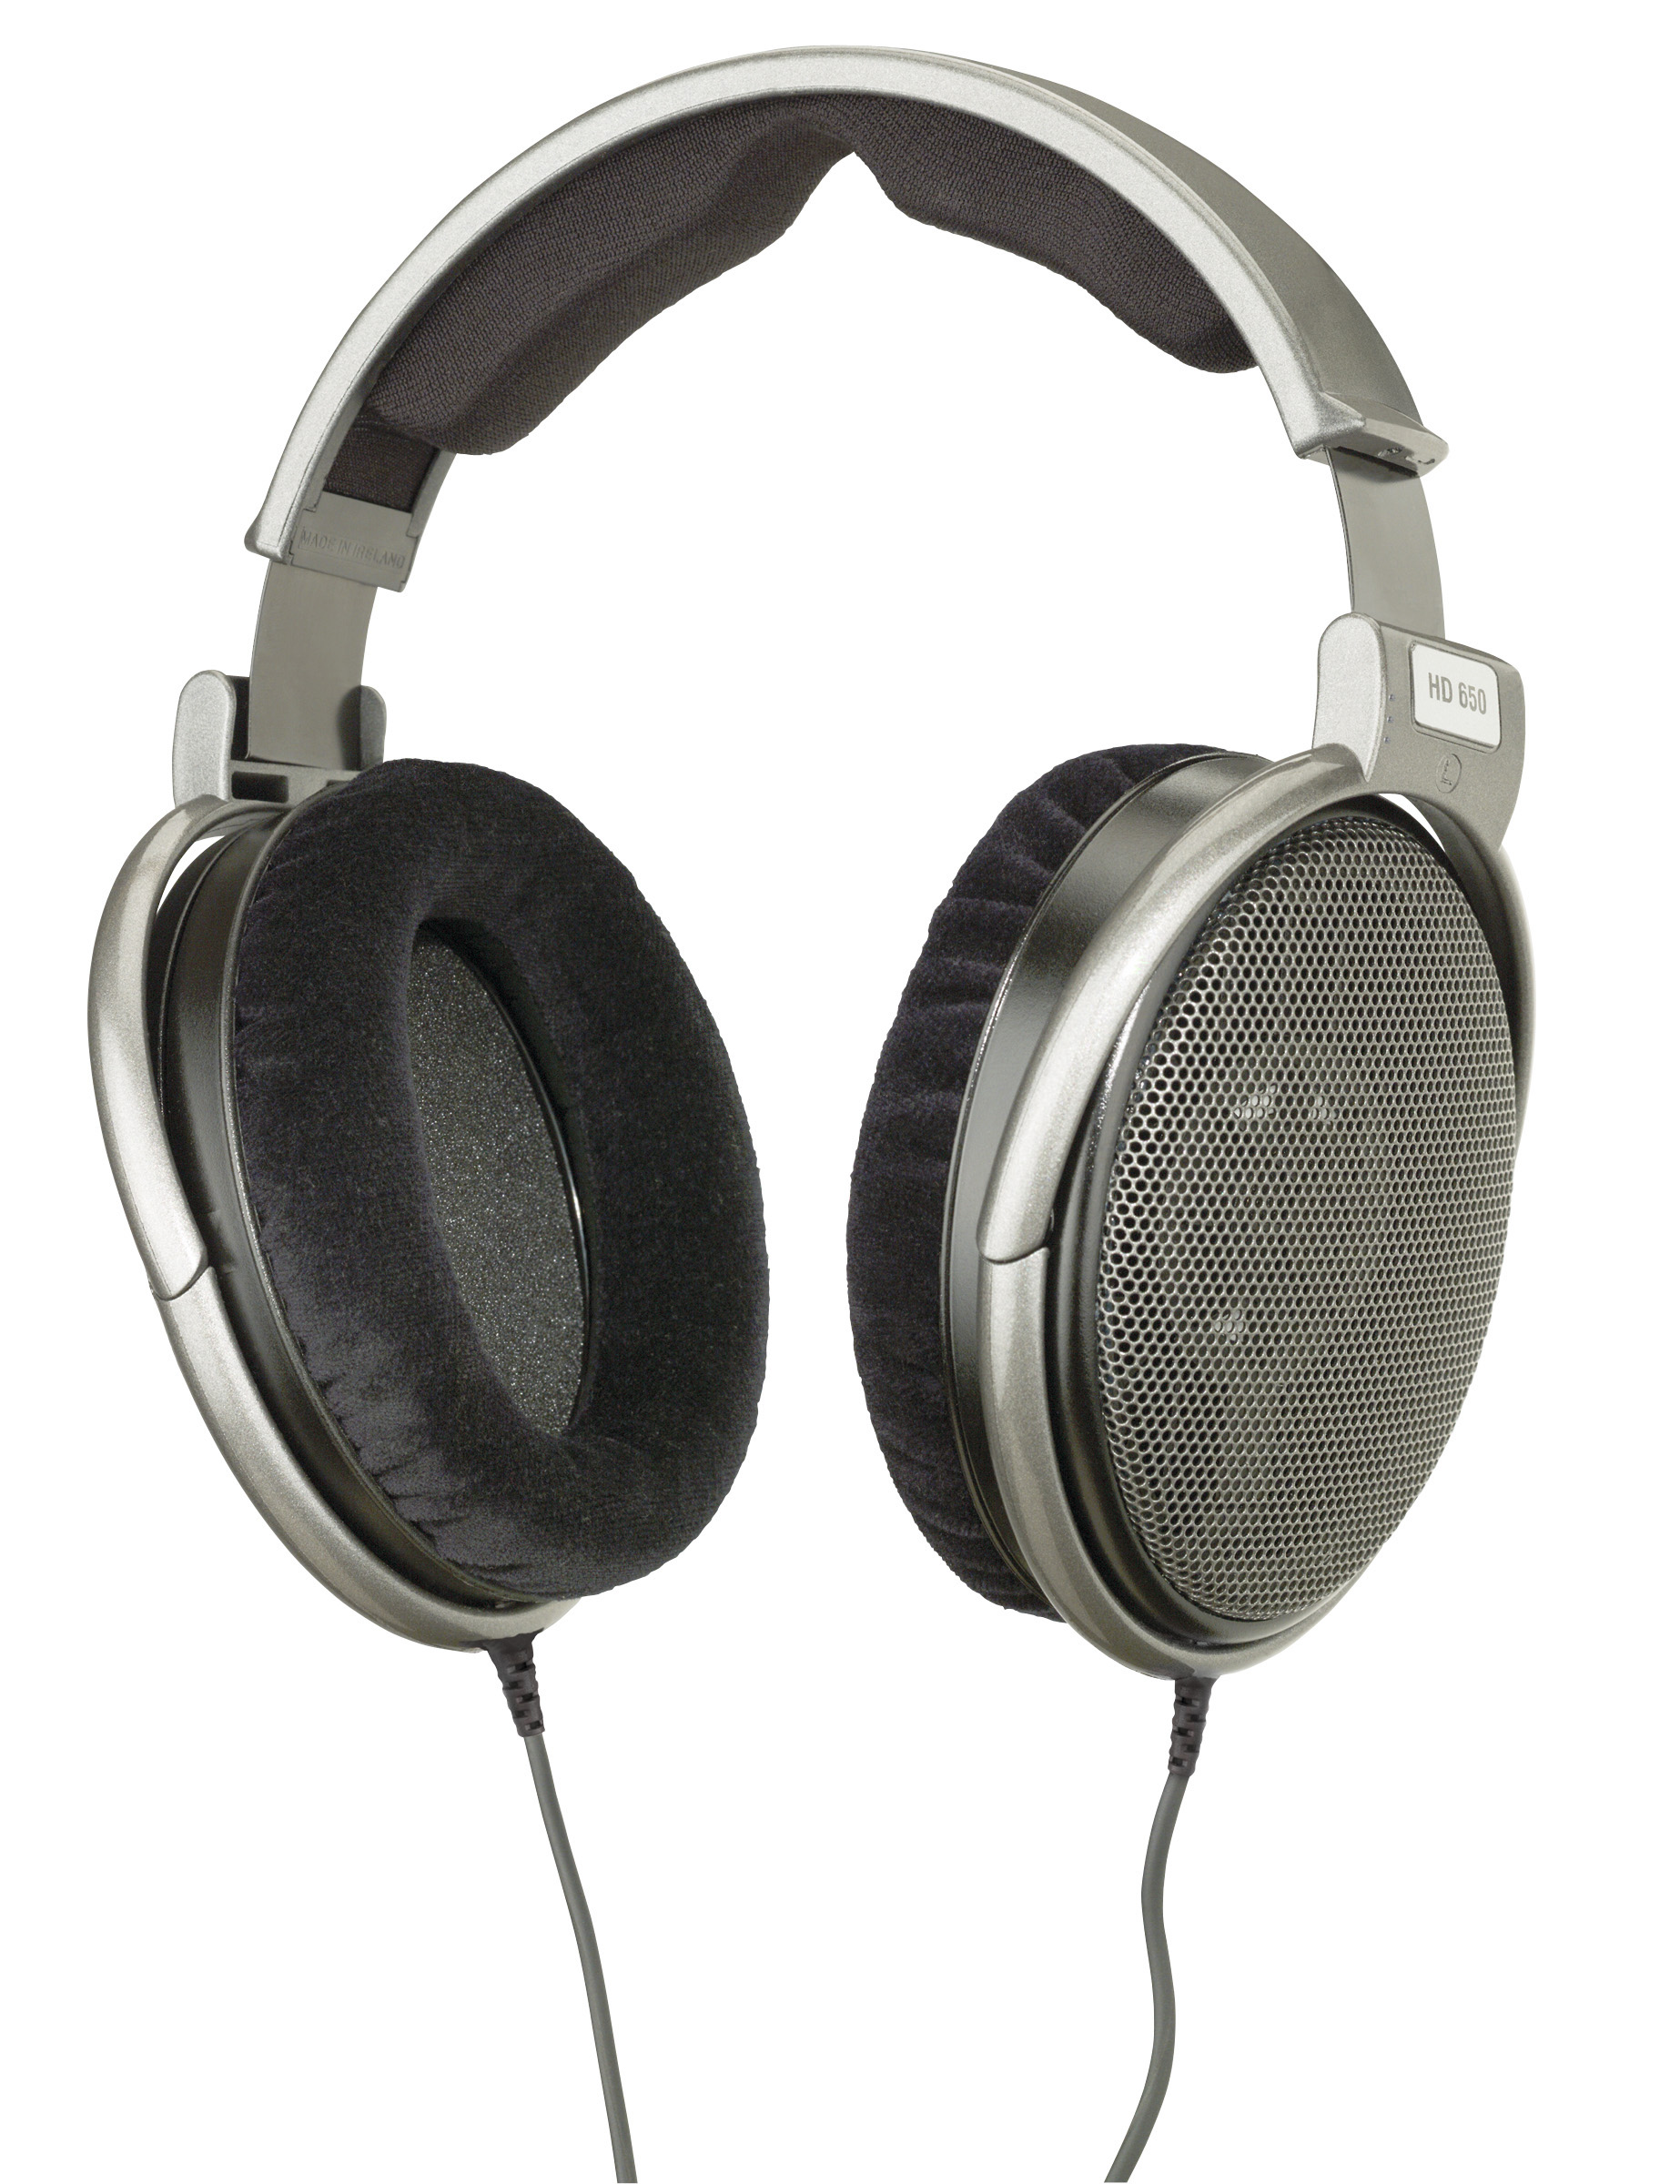 sennheiser hd 650 high quality headphones around ear headphone. Black Bedroom Furniture Sets. Home Design Ideas